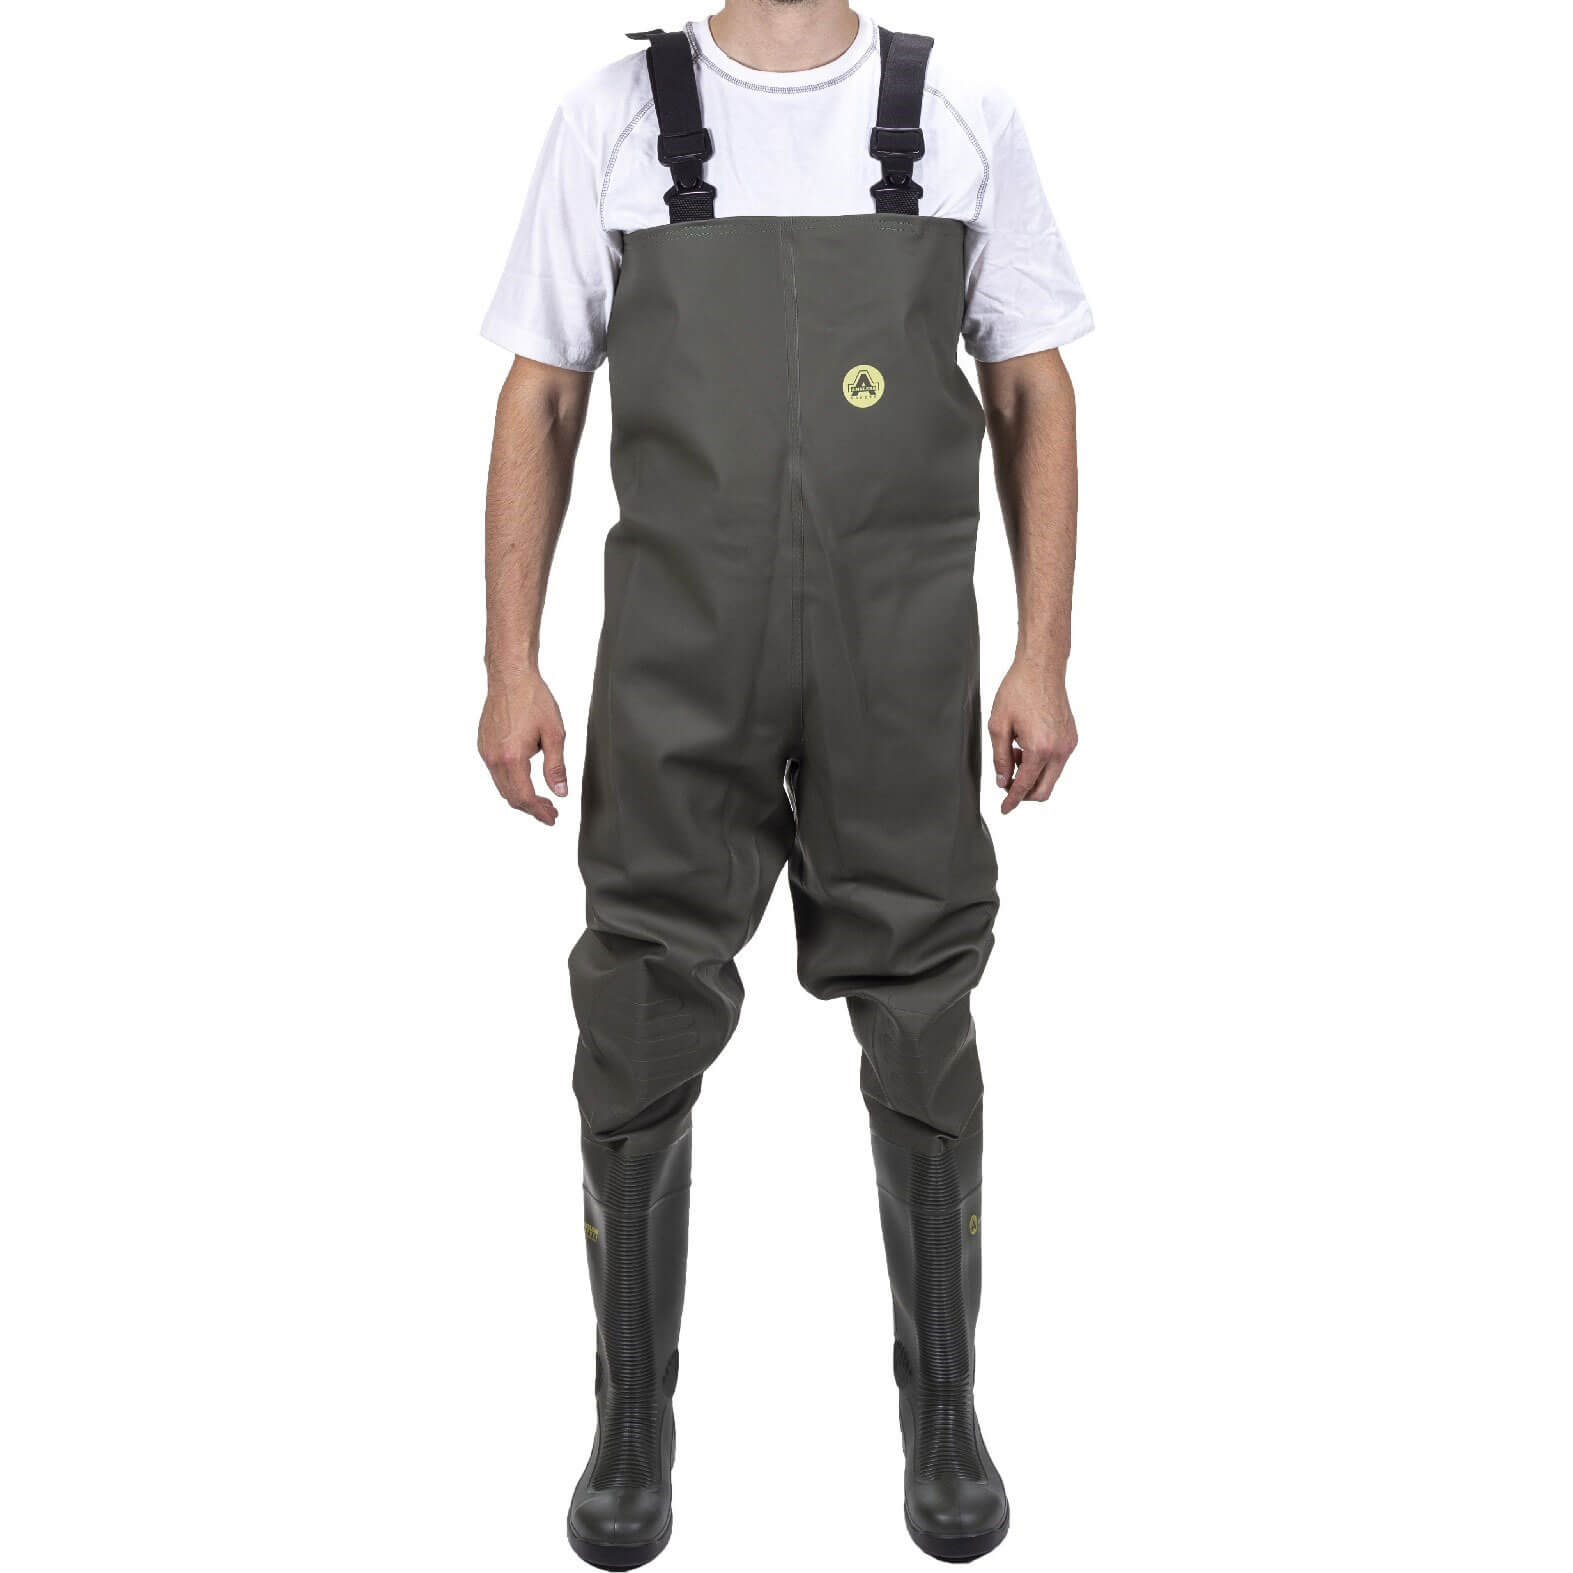 CHEAP Amblers Safety Tyne Chest Safety Wader Green Size 4 – Men's Outerwear